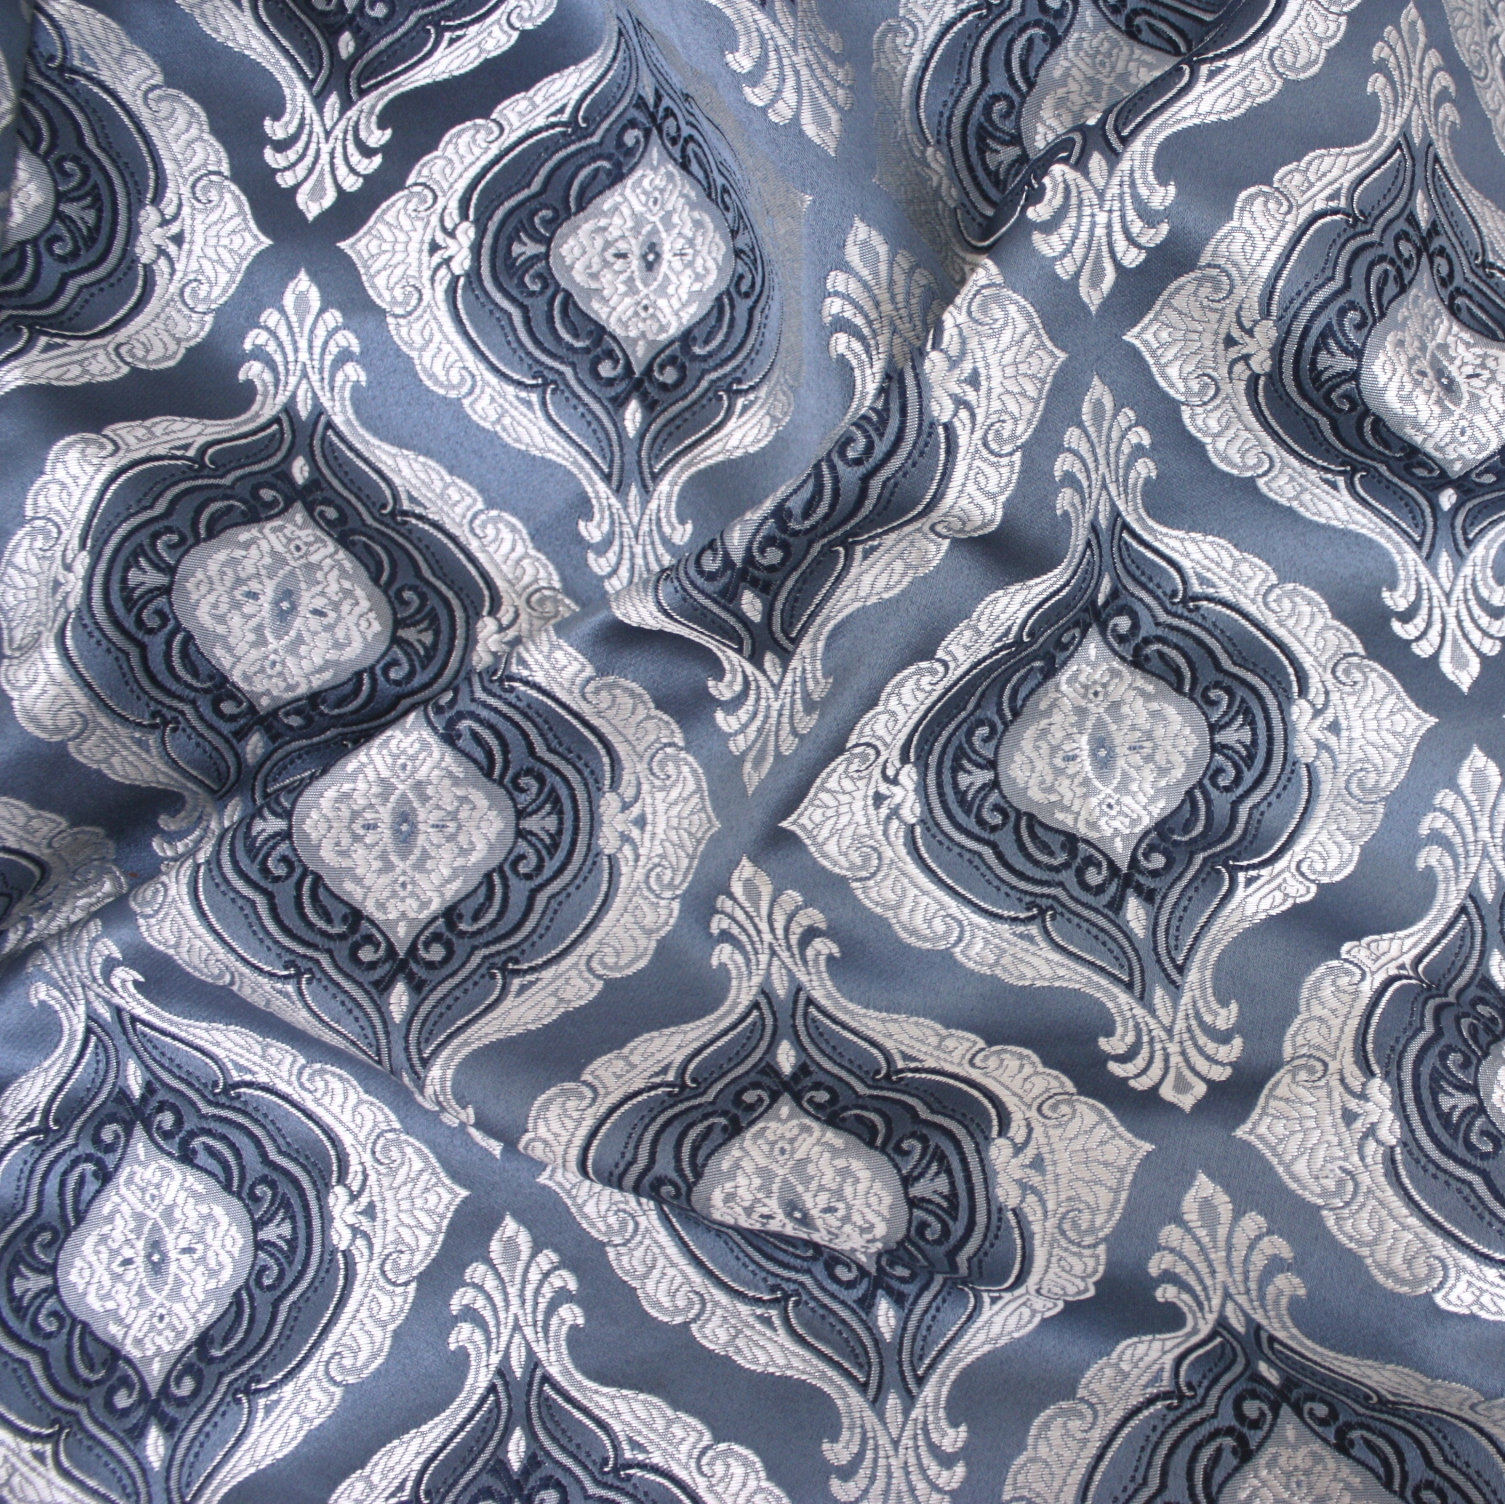 Blue Silver Majestic Damask Table Linen Rental Tablecloth